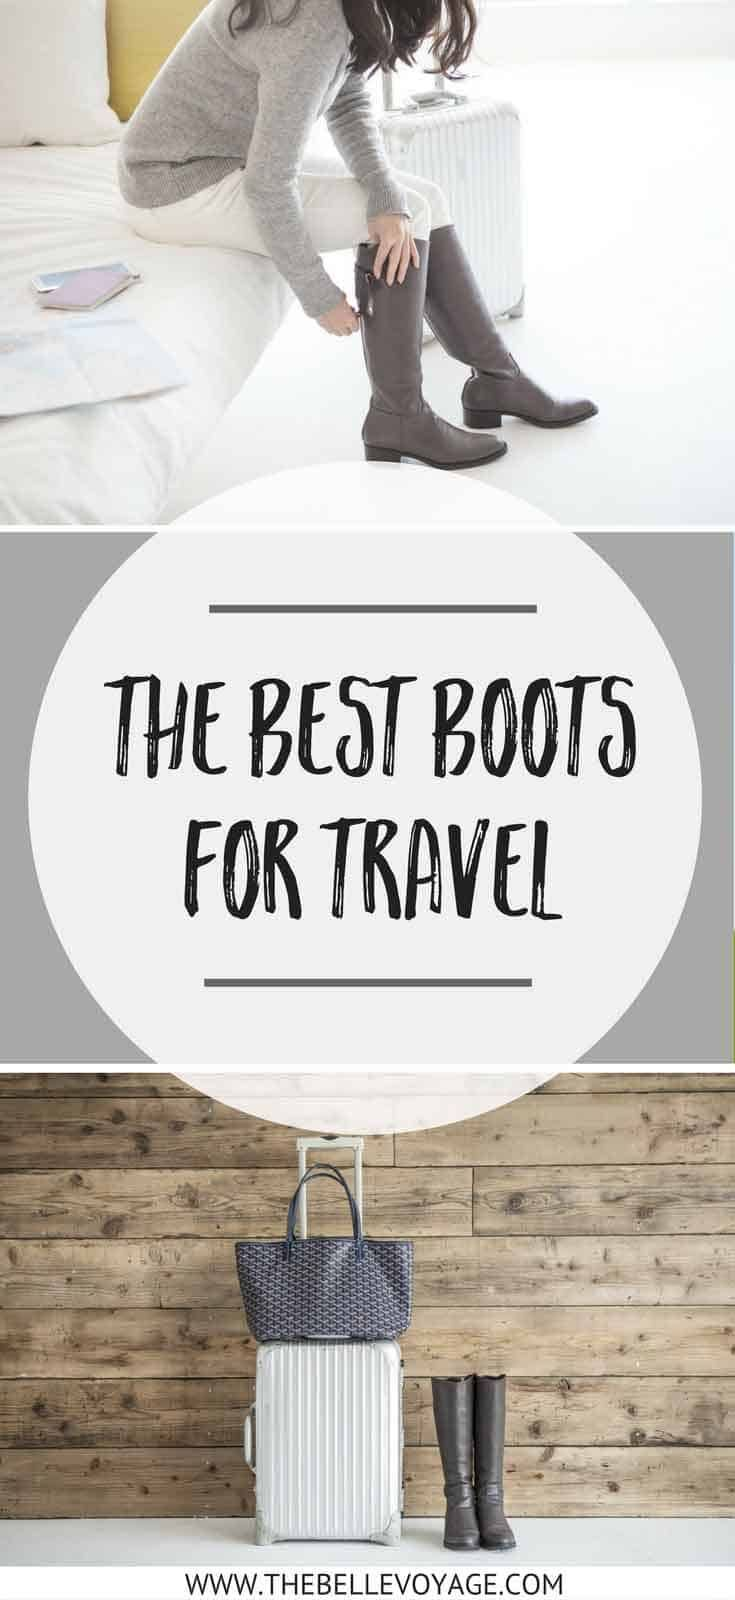 Comfortable Boots for Women | Travel Shoes for Europe | Travel Outfit Ideas | Airplane Outfit | Packing Tips | Shoes for Travel | Outfits with Boots | Ankle Boots | Knee High Boots | Riding Boots  via @thebellevoyage